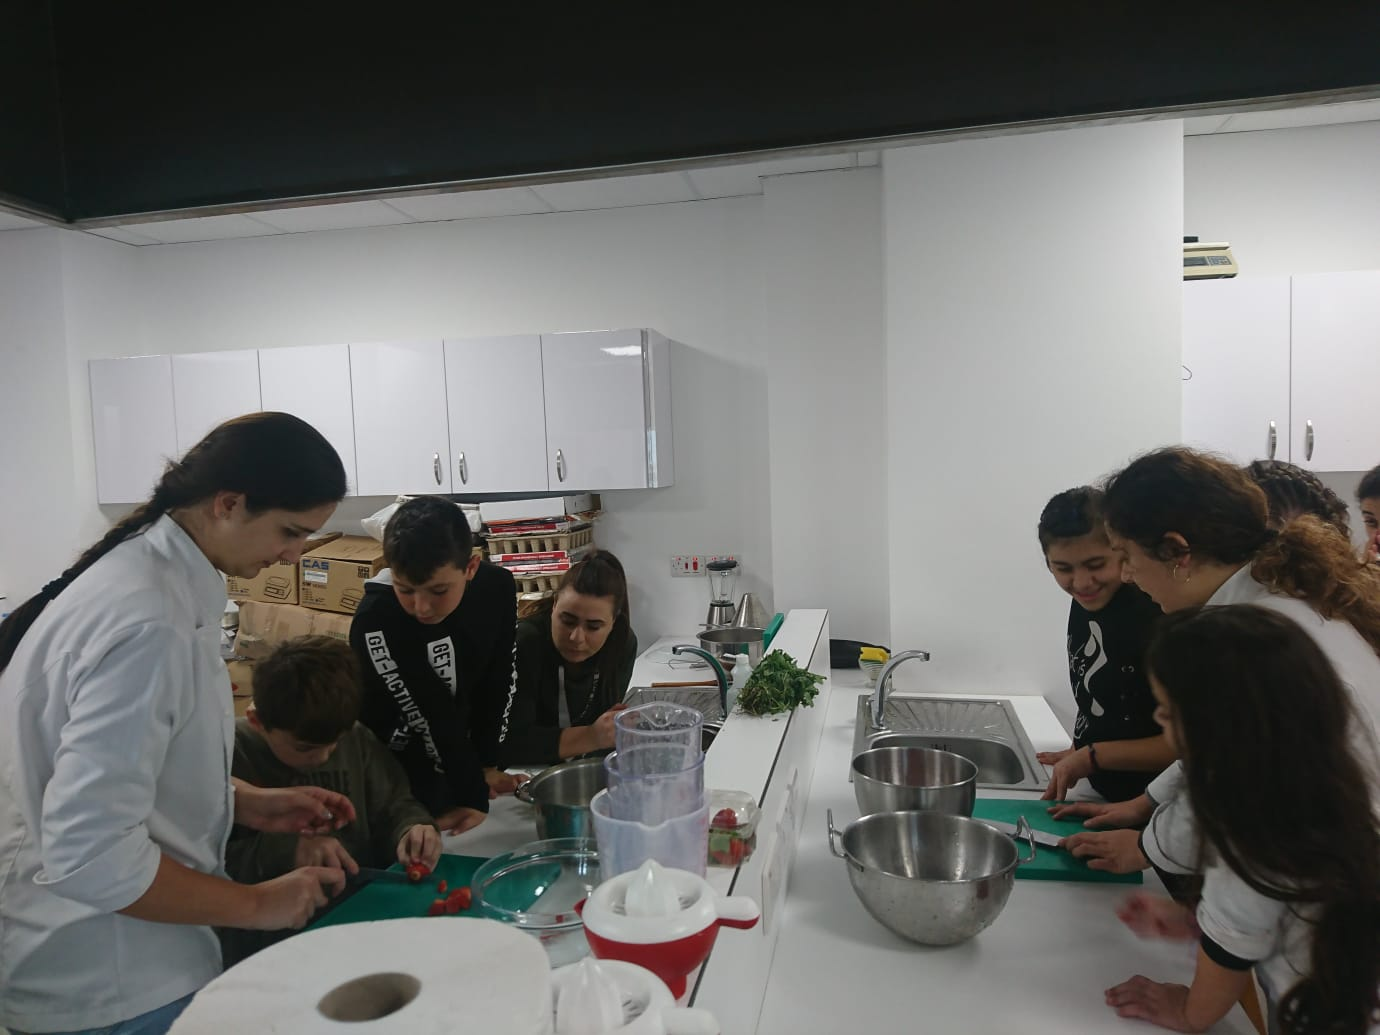 Cut, slice, whisk, mix, learn… Özay Günsel Children's University students to work in Fun Kitchen…